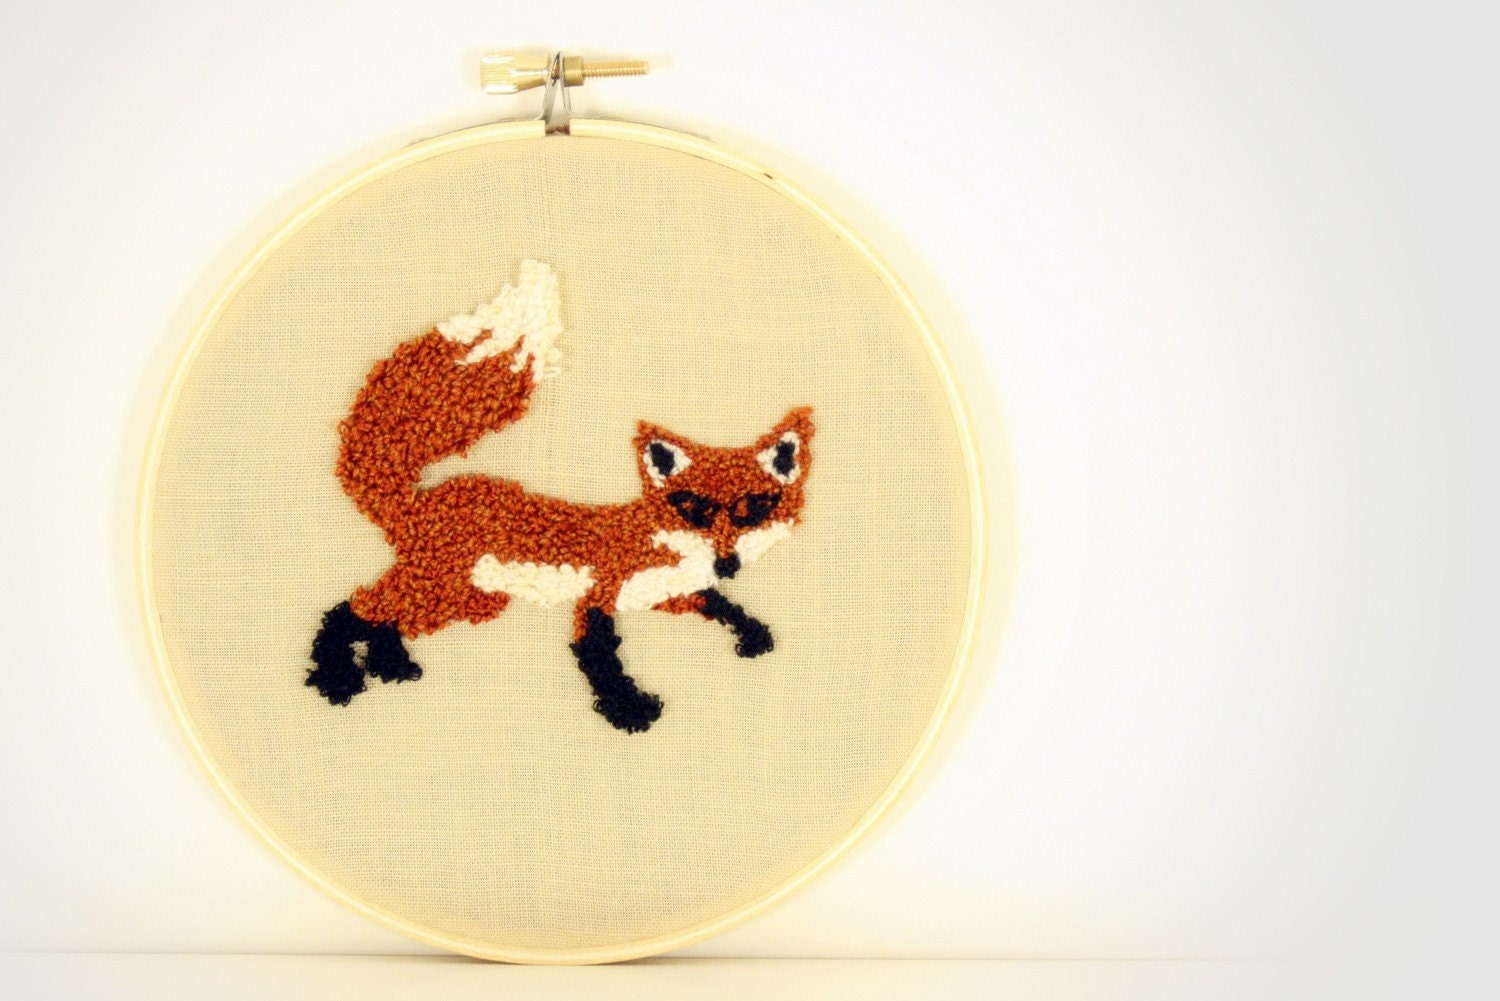 Fox Punch Needle Embroidery Wall Hanging 5 inch hoop by erinf115 on Etsy